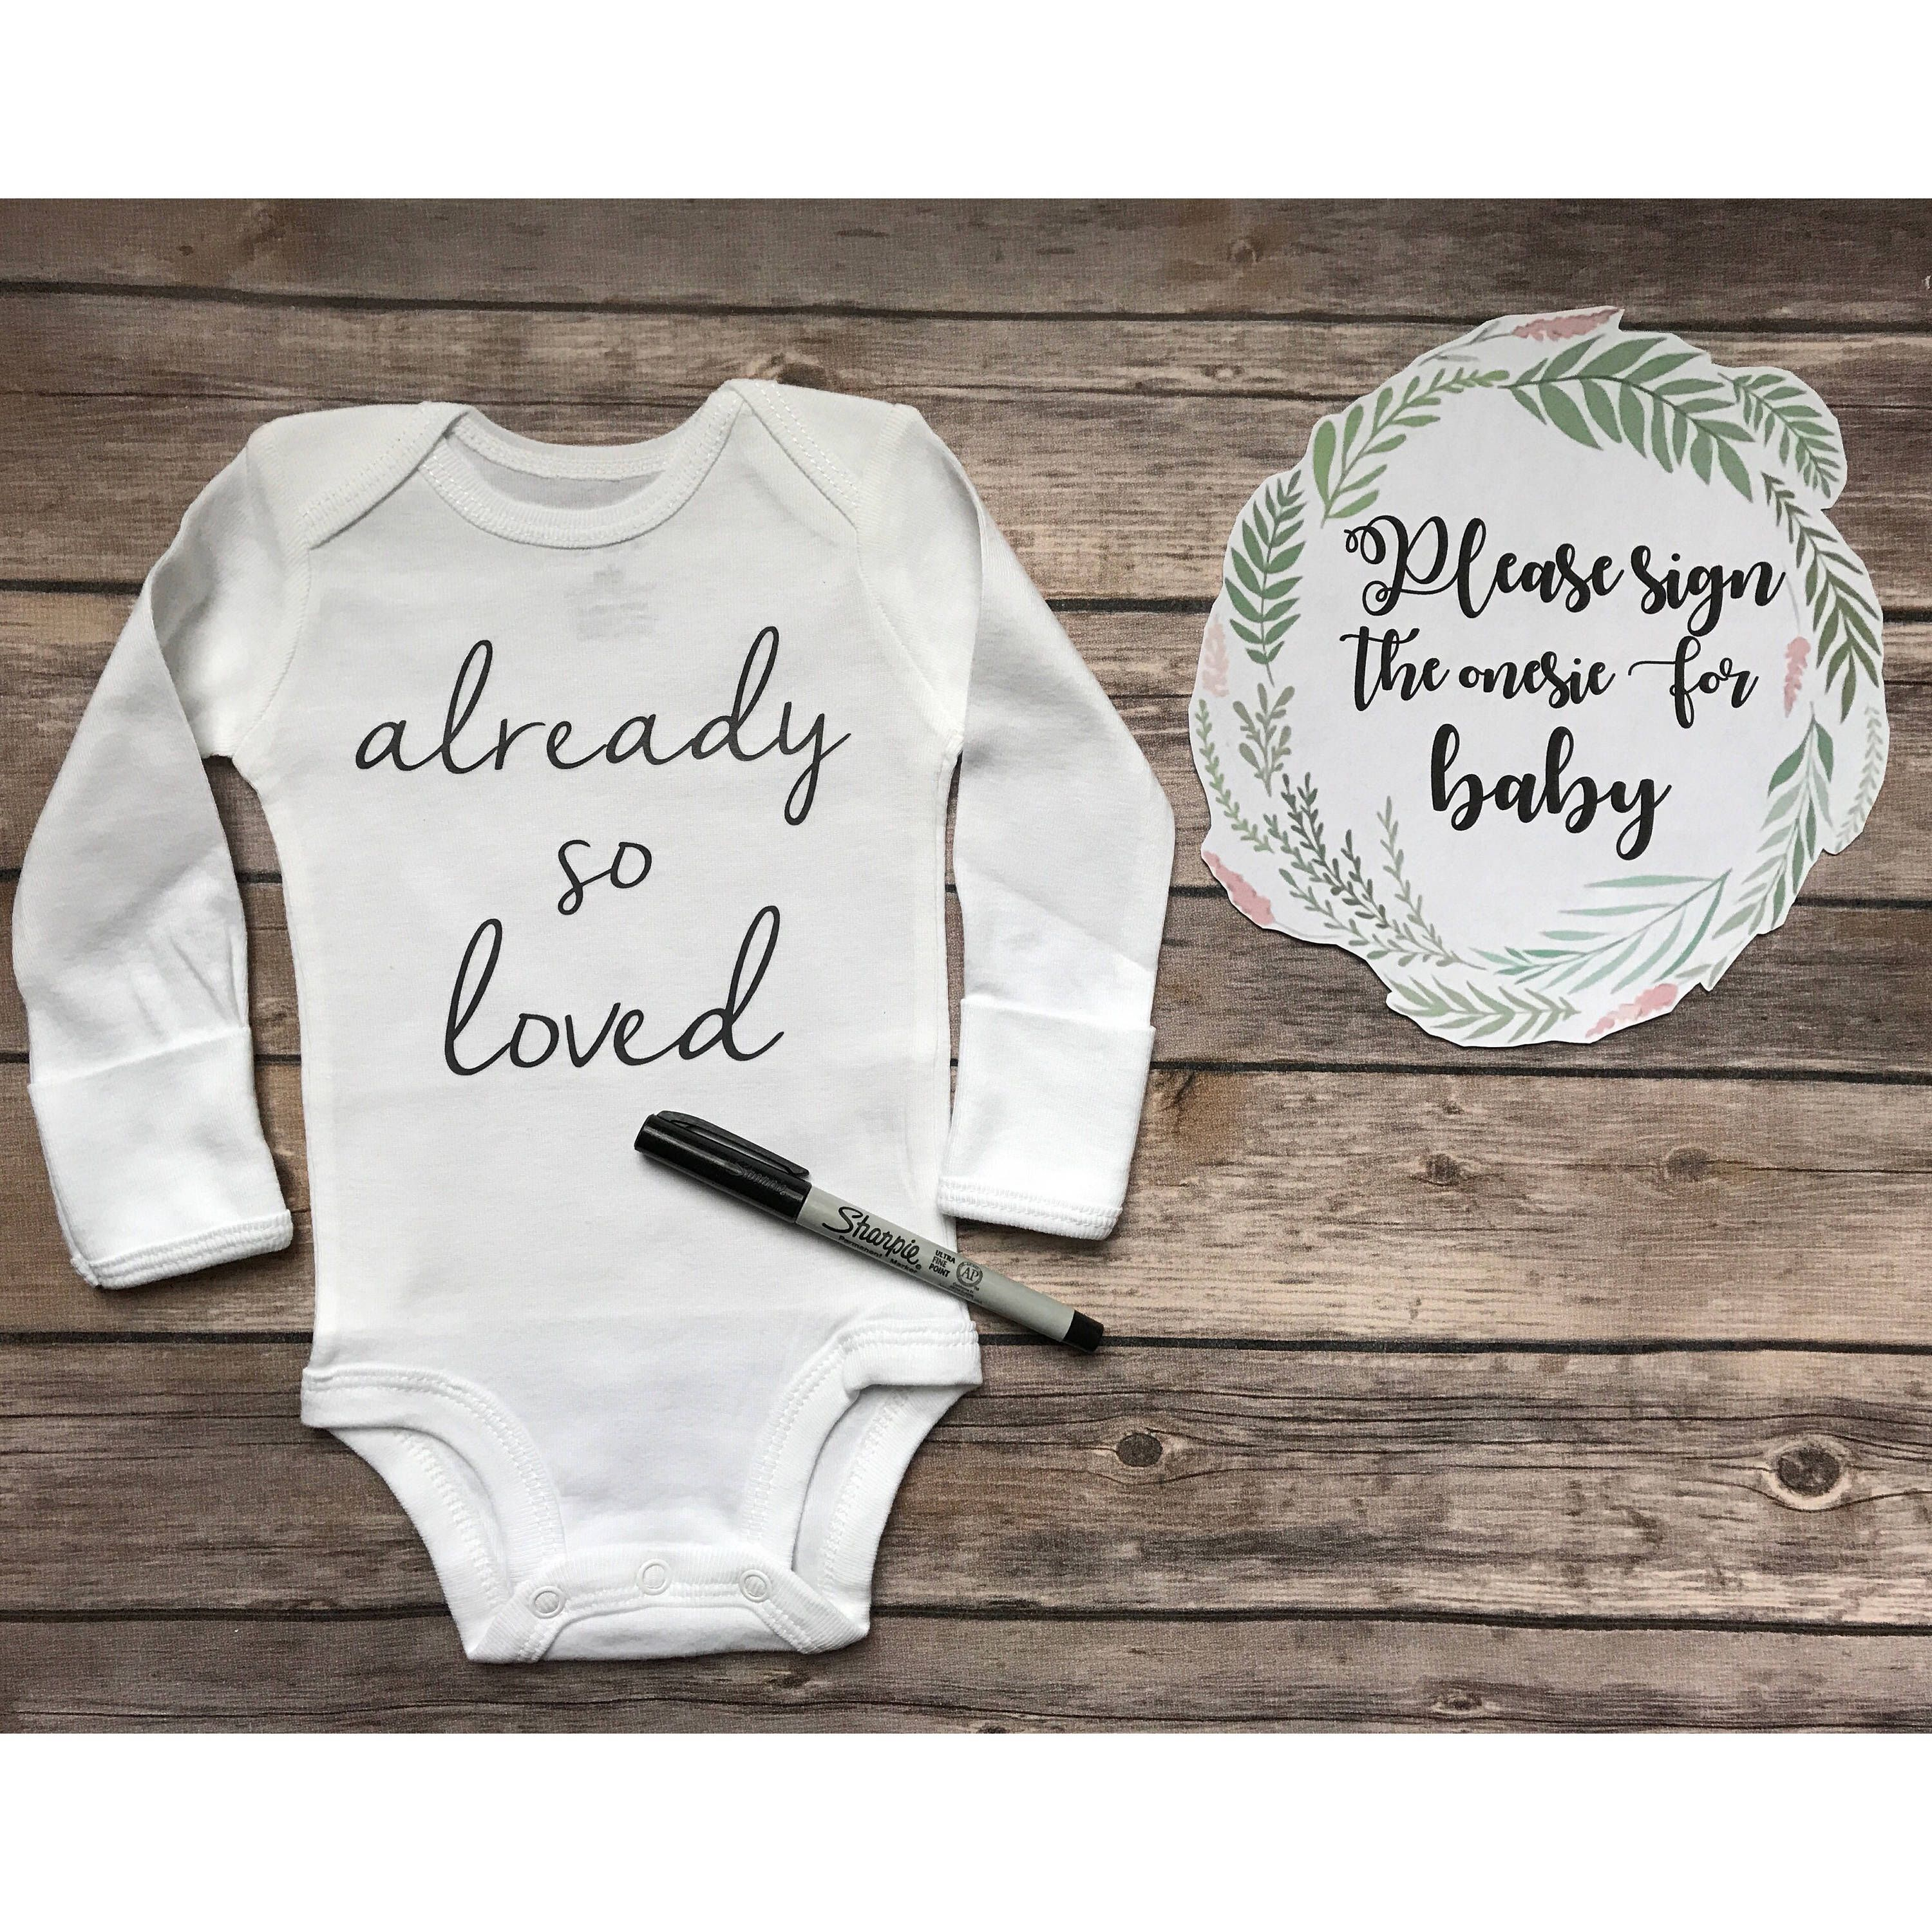 Baby Shower Guest Book Already So Loved Onesie Perfect Baby